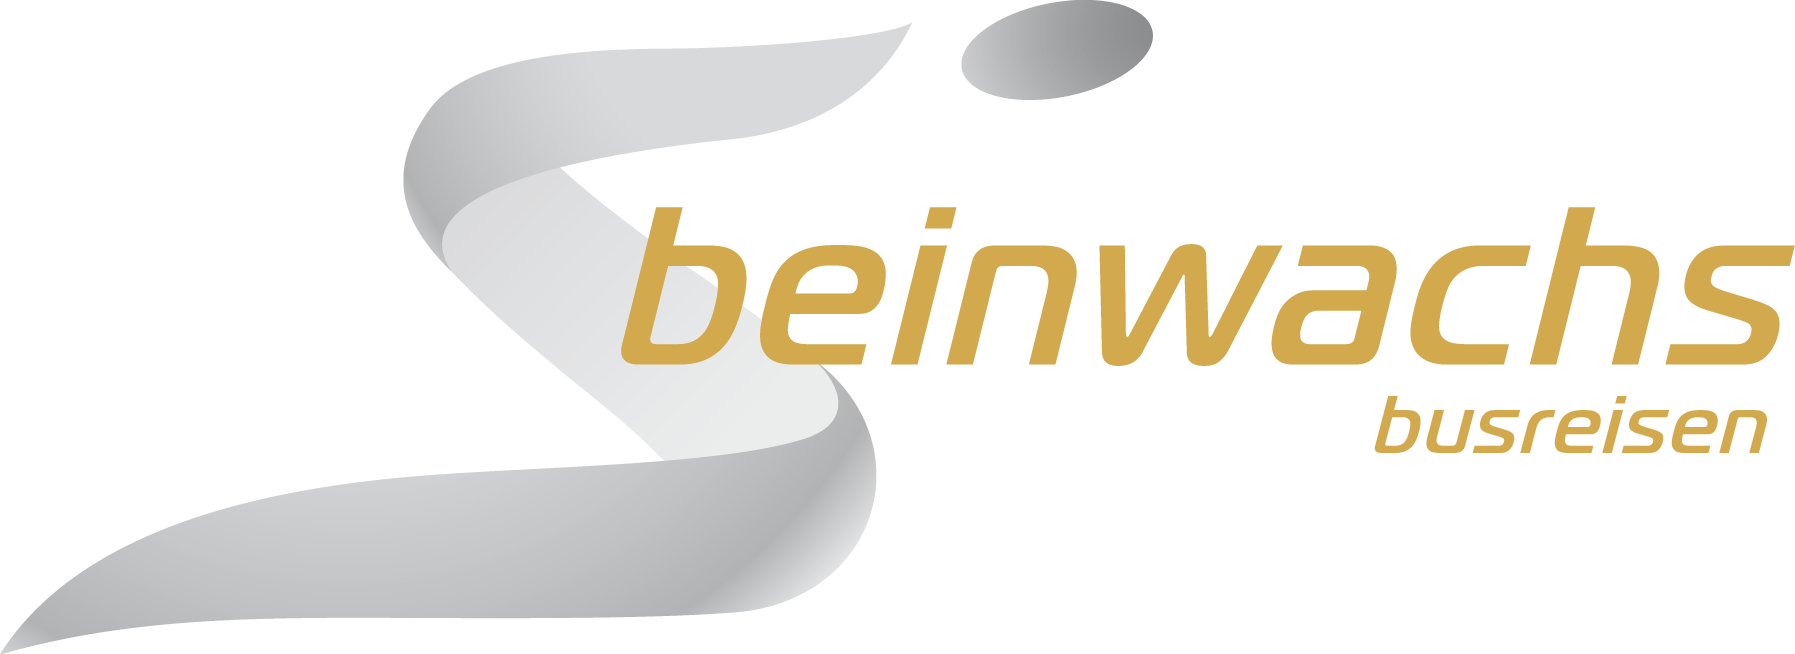 Beinwachs - Logo